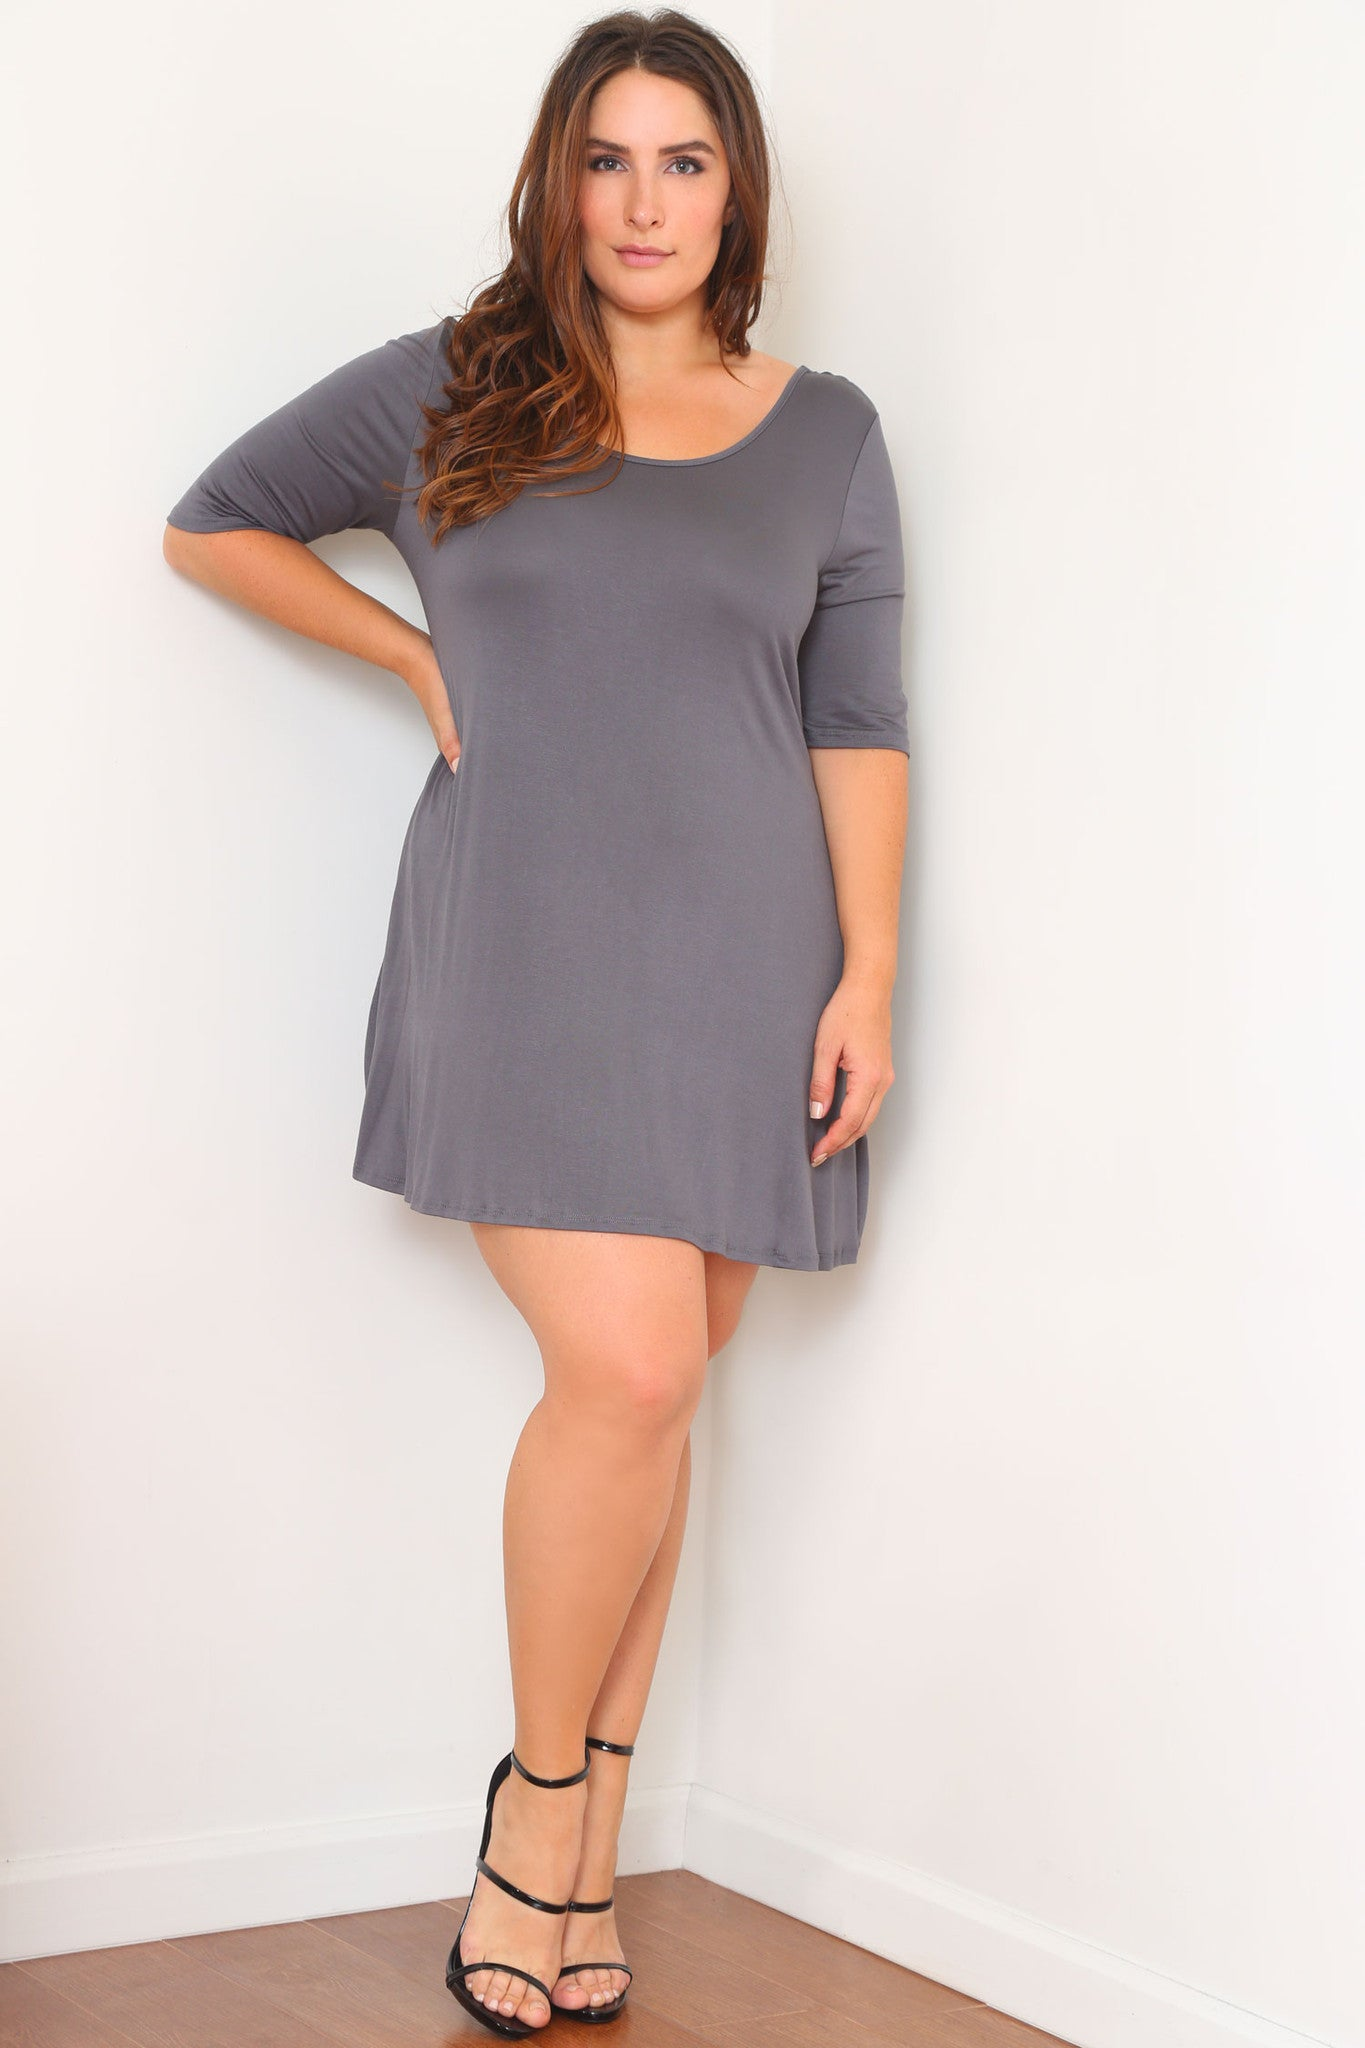 JOLENE DRESS - Glam Envy - 1